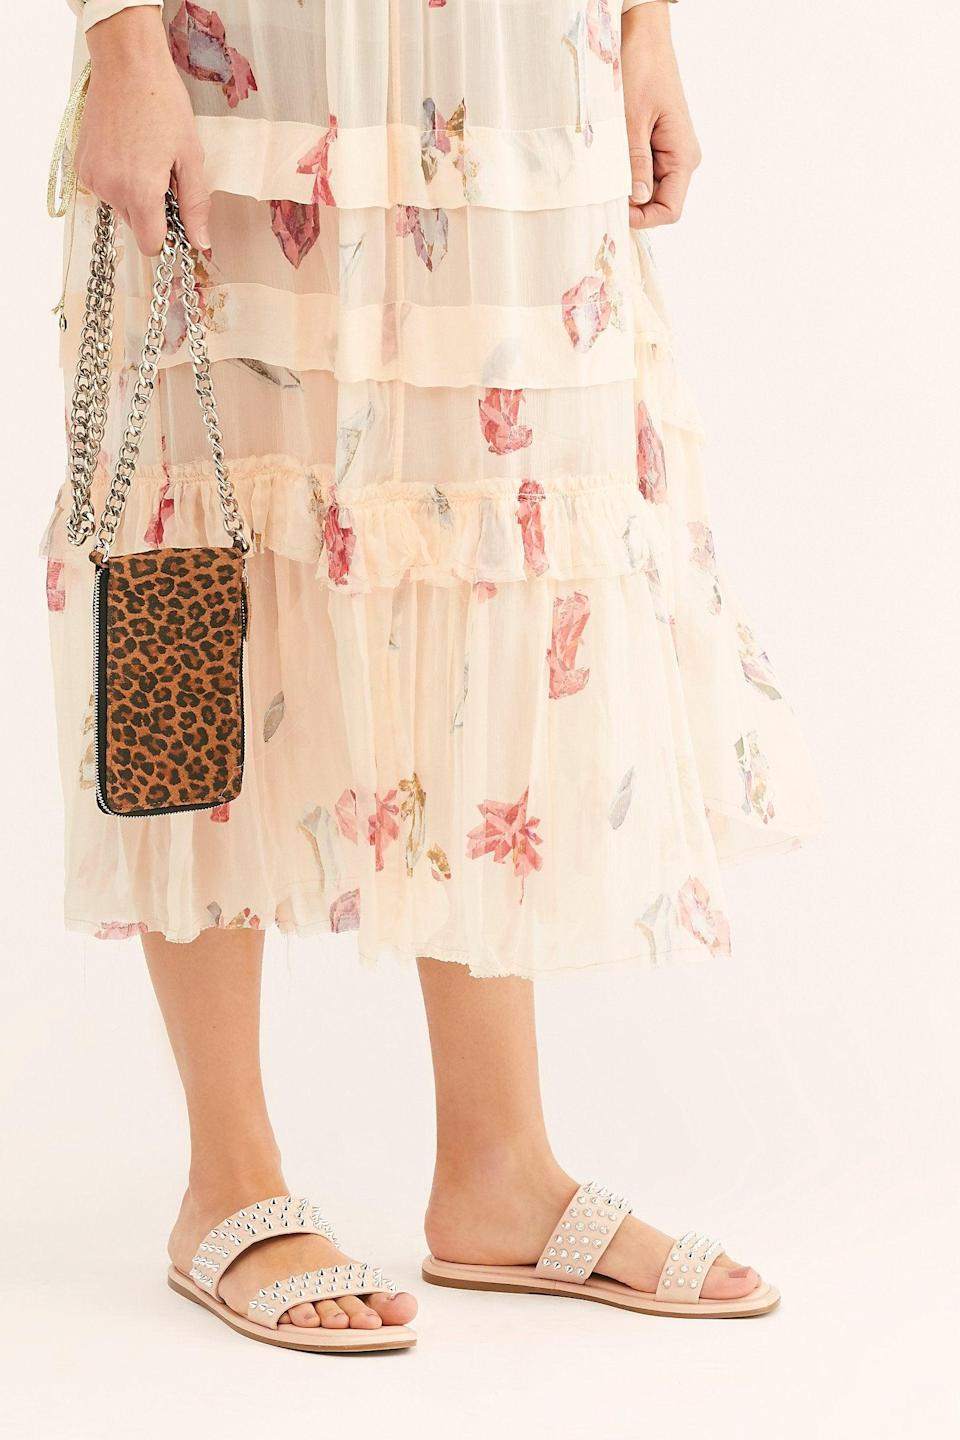 """<h3><a href=""""https://www.freepeople.com/sale-all/"""" rel=""""nofollow noopener"""" target=""""_blank"""" data-ylk=""""slk:Free People"""" class=""""link rapid-noclick-resp"""">Free People</a></h3> <br><strong>Dates:</strong> Limited time<br><strong>Discount:</strong> Up to 50% off<br><strong>Promo Code:</strong> None<br><br><strong>Inuovo</strong> Parker Studded Slide Sandals, $, available at <a href=""""https://go.skimresources.com/?id=30283X879131&url=https%3A%2F%2Fwww.freepeople.com%2Fshop%2Fparker-studded-slide-sandals%2F%3Fcategory%3Dsale-all%26color%3D066"""" rel=""""nofollow noopener"""" target=""""_blank"""" data-ylk=""""slk:Free People"""" class=""""link rapid-noclick-resp"""">Free People</a><br><br><br>"""